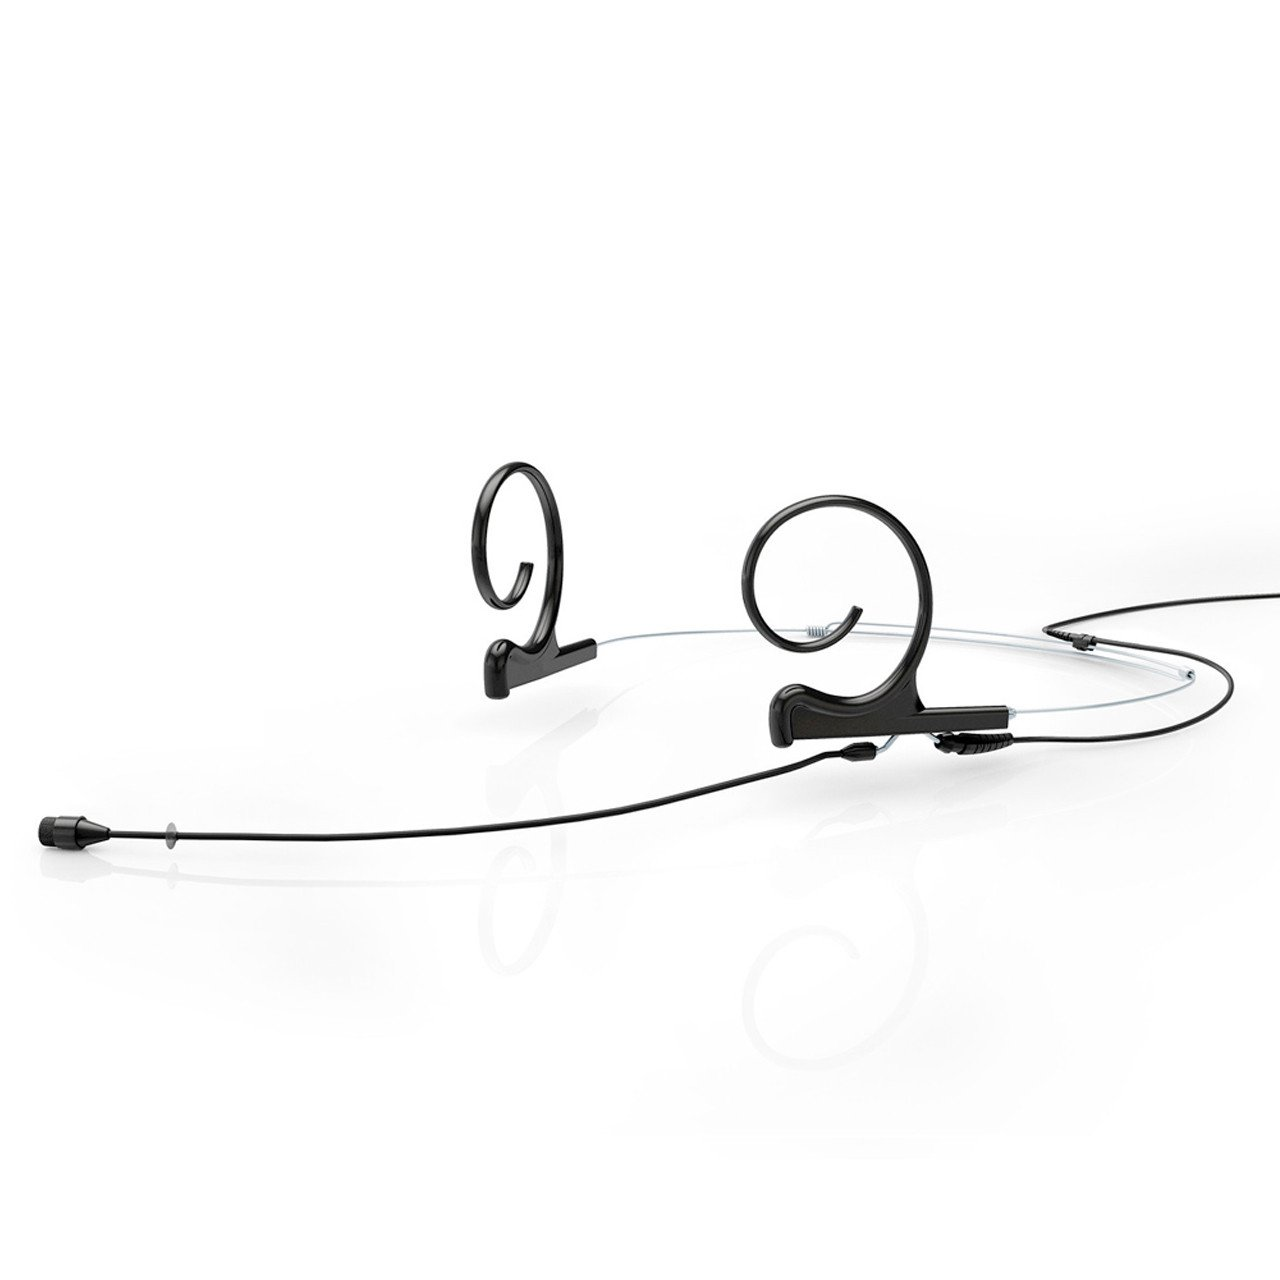 Headset Microphones - DPA D:fine 66 Dual-ear Omnidirectional Headset Microphone